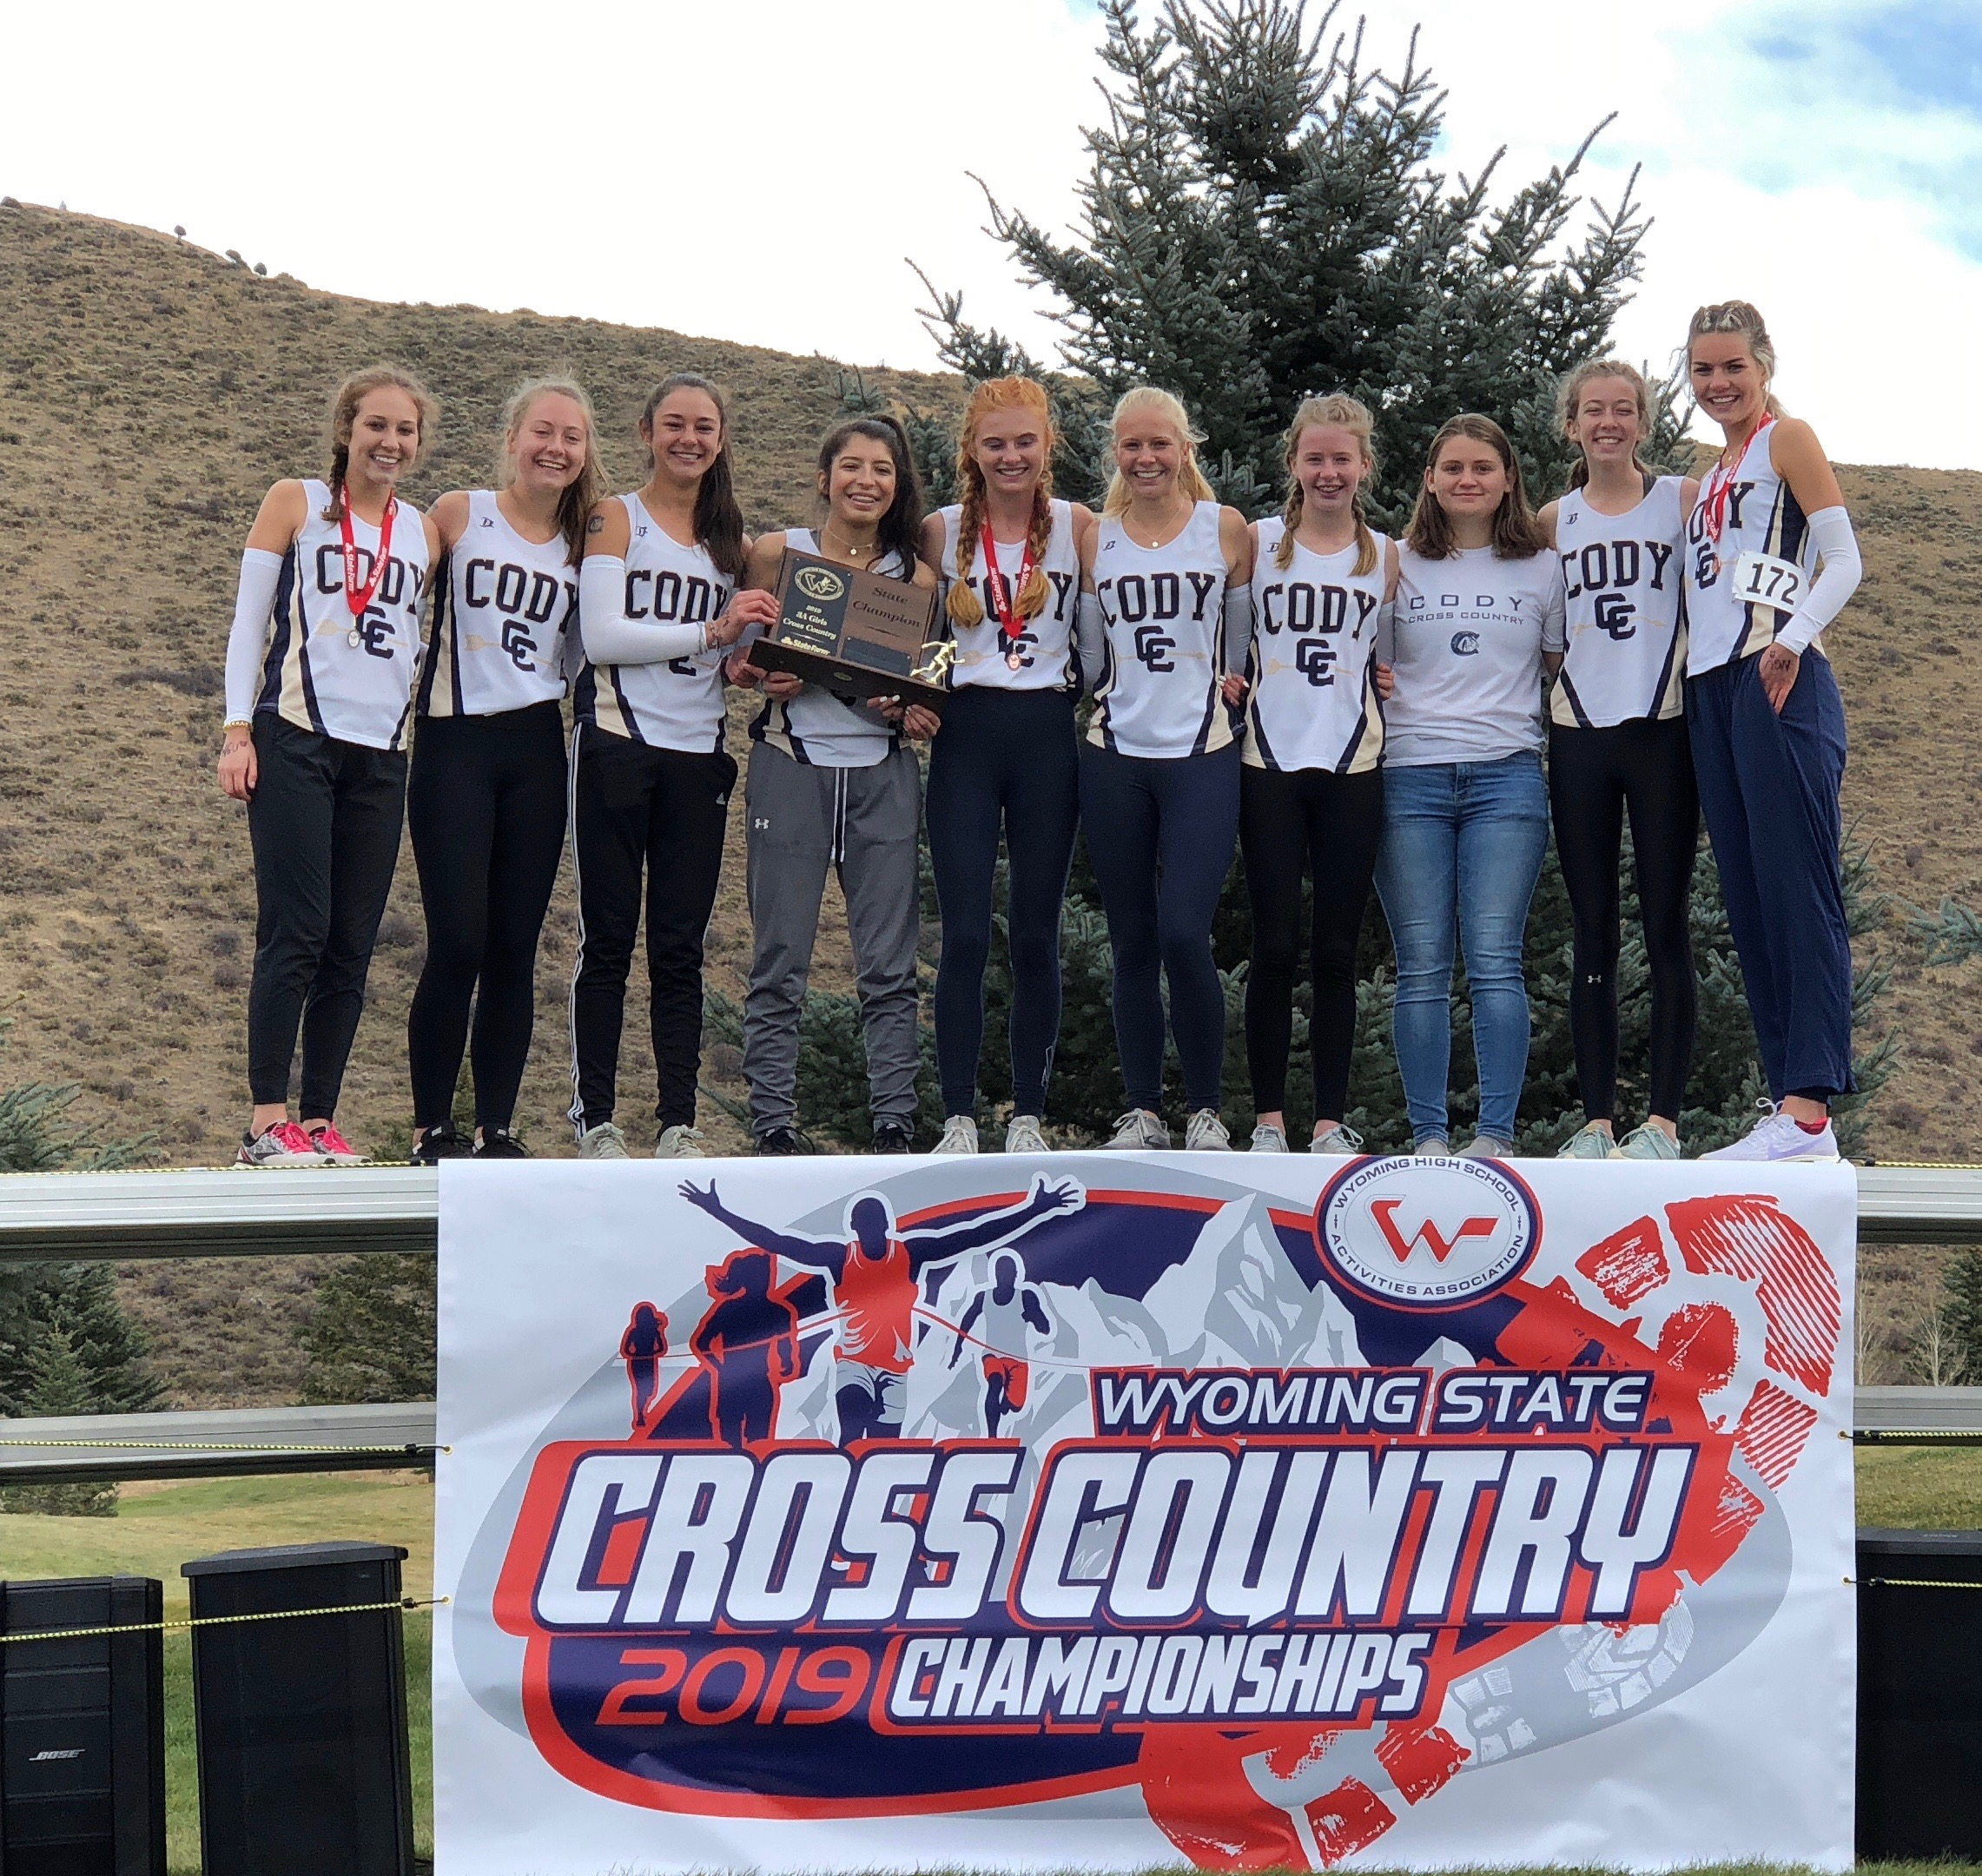 Wyoming State Cross Country 2019 Championships